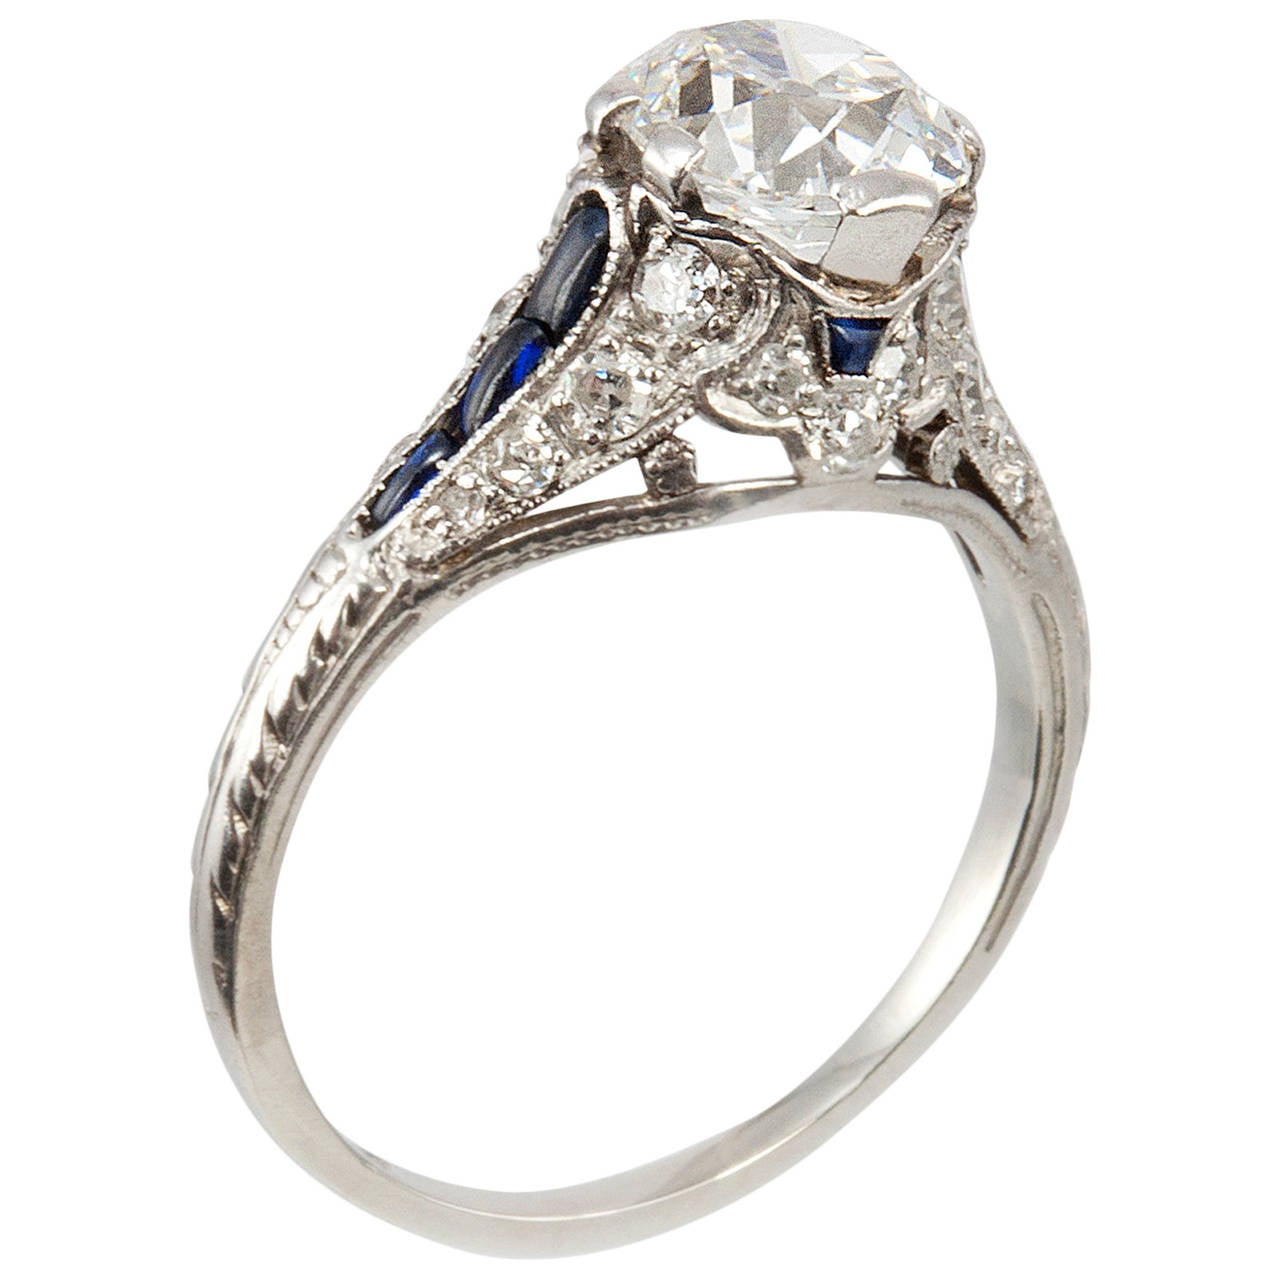 1 57 Carat Cushion Cut Diamond Sapphire Platinum Antique Engagement Ring For